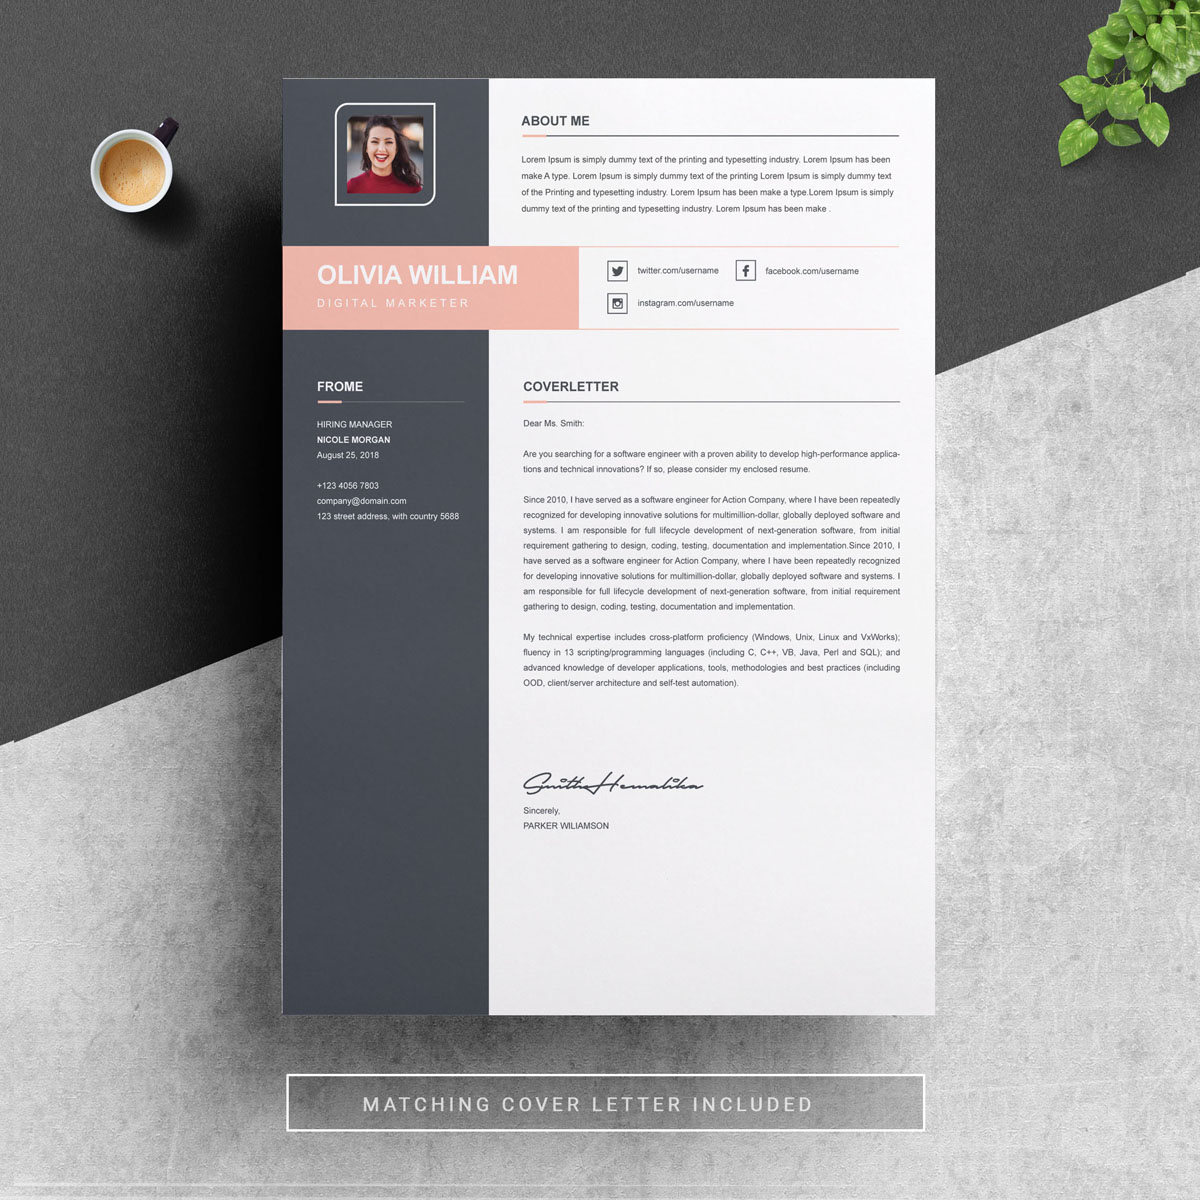 https://s3.tmimgcdn.com/templates/25423/scr/1564412082100_03_%20Resume%20Cover%20Letter%20Page%20Free%20Resume%20Design%20Template.jpg